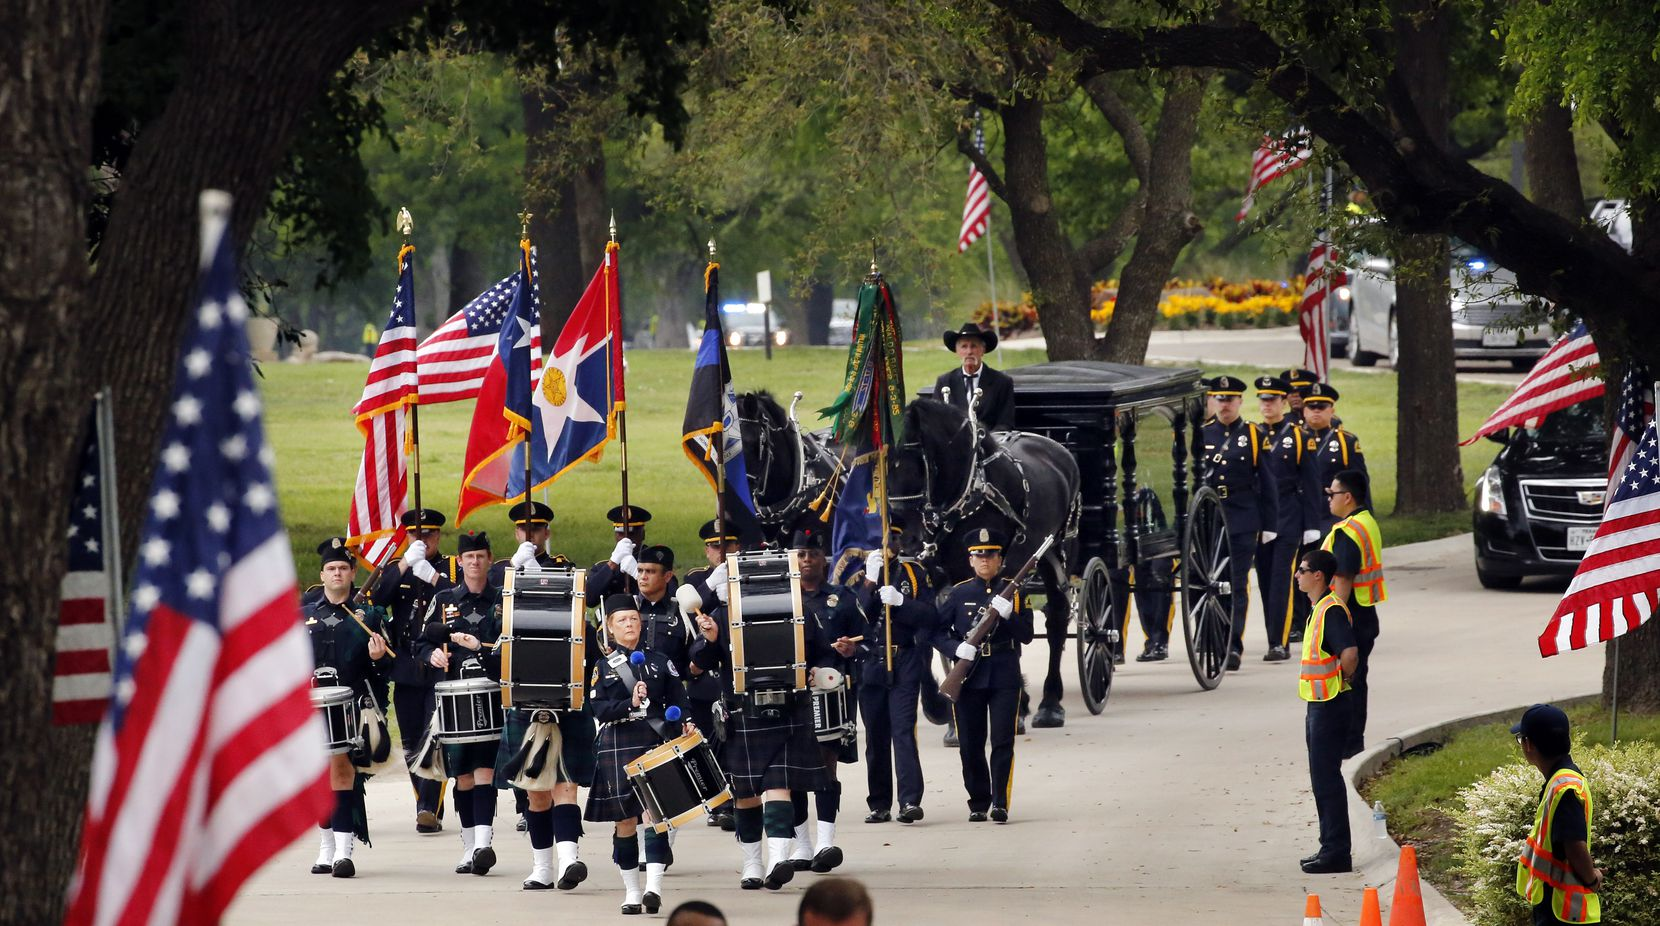 The Dallas Police Color Guard and Honor Guard escort the horse-drawn carriage carrying slain Dallas police officer Rogelio Santander, Jr. to his resting place in the Garden of Honor at Restland Funeral Home and Cemetery in Dallas, Tuesday.